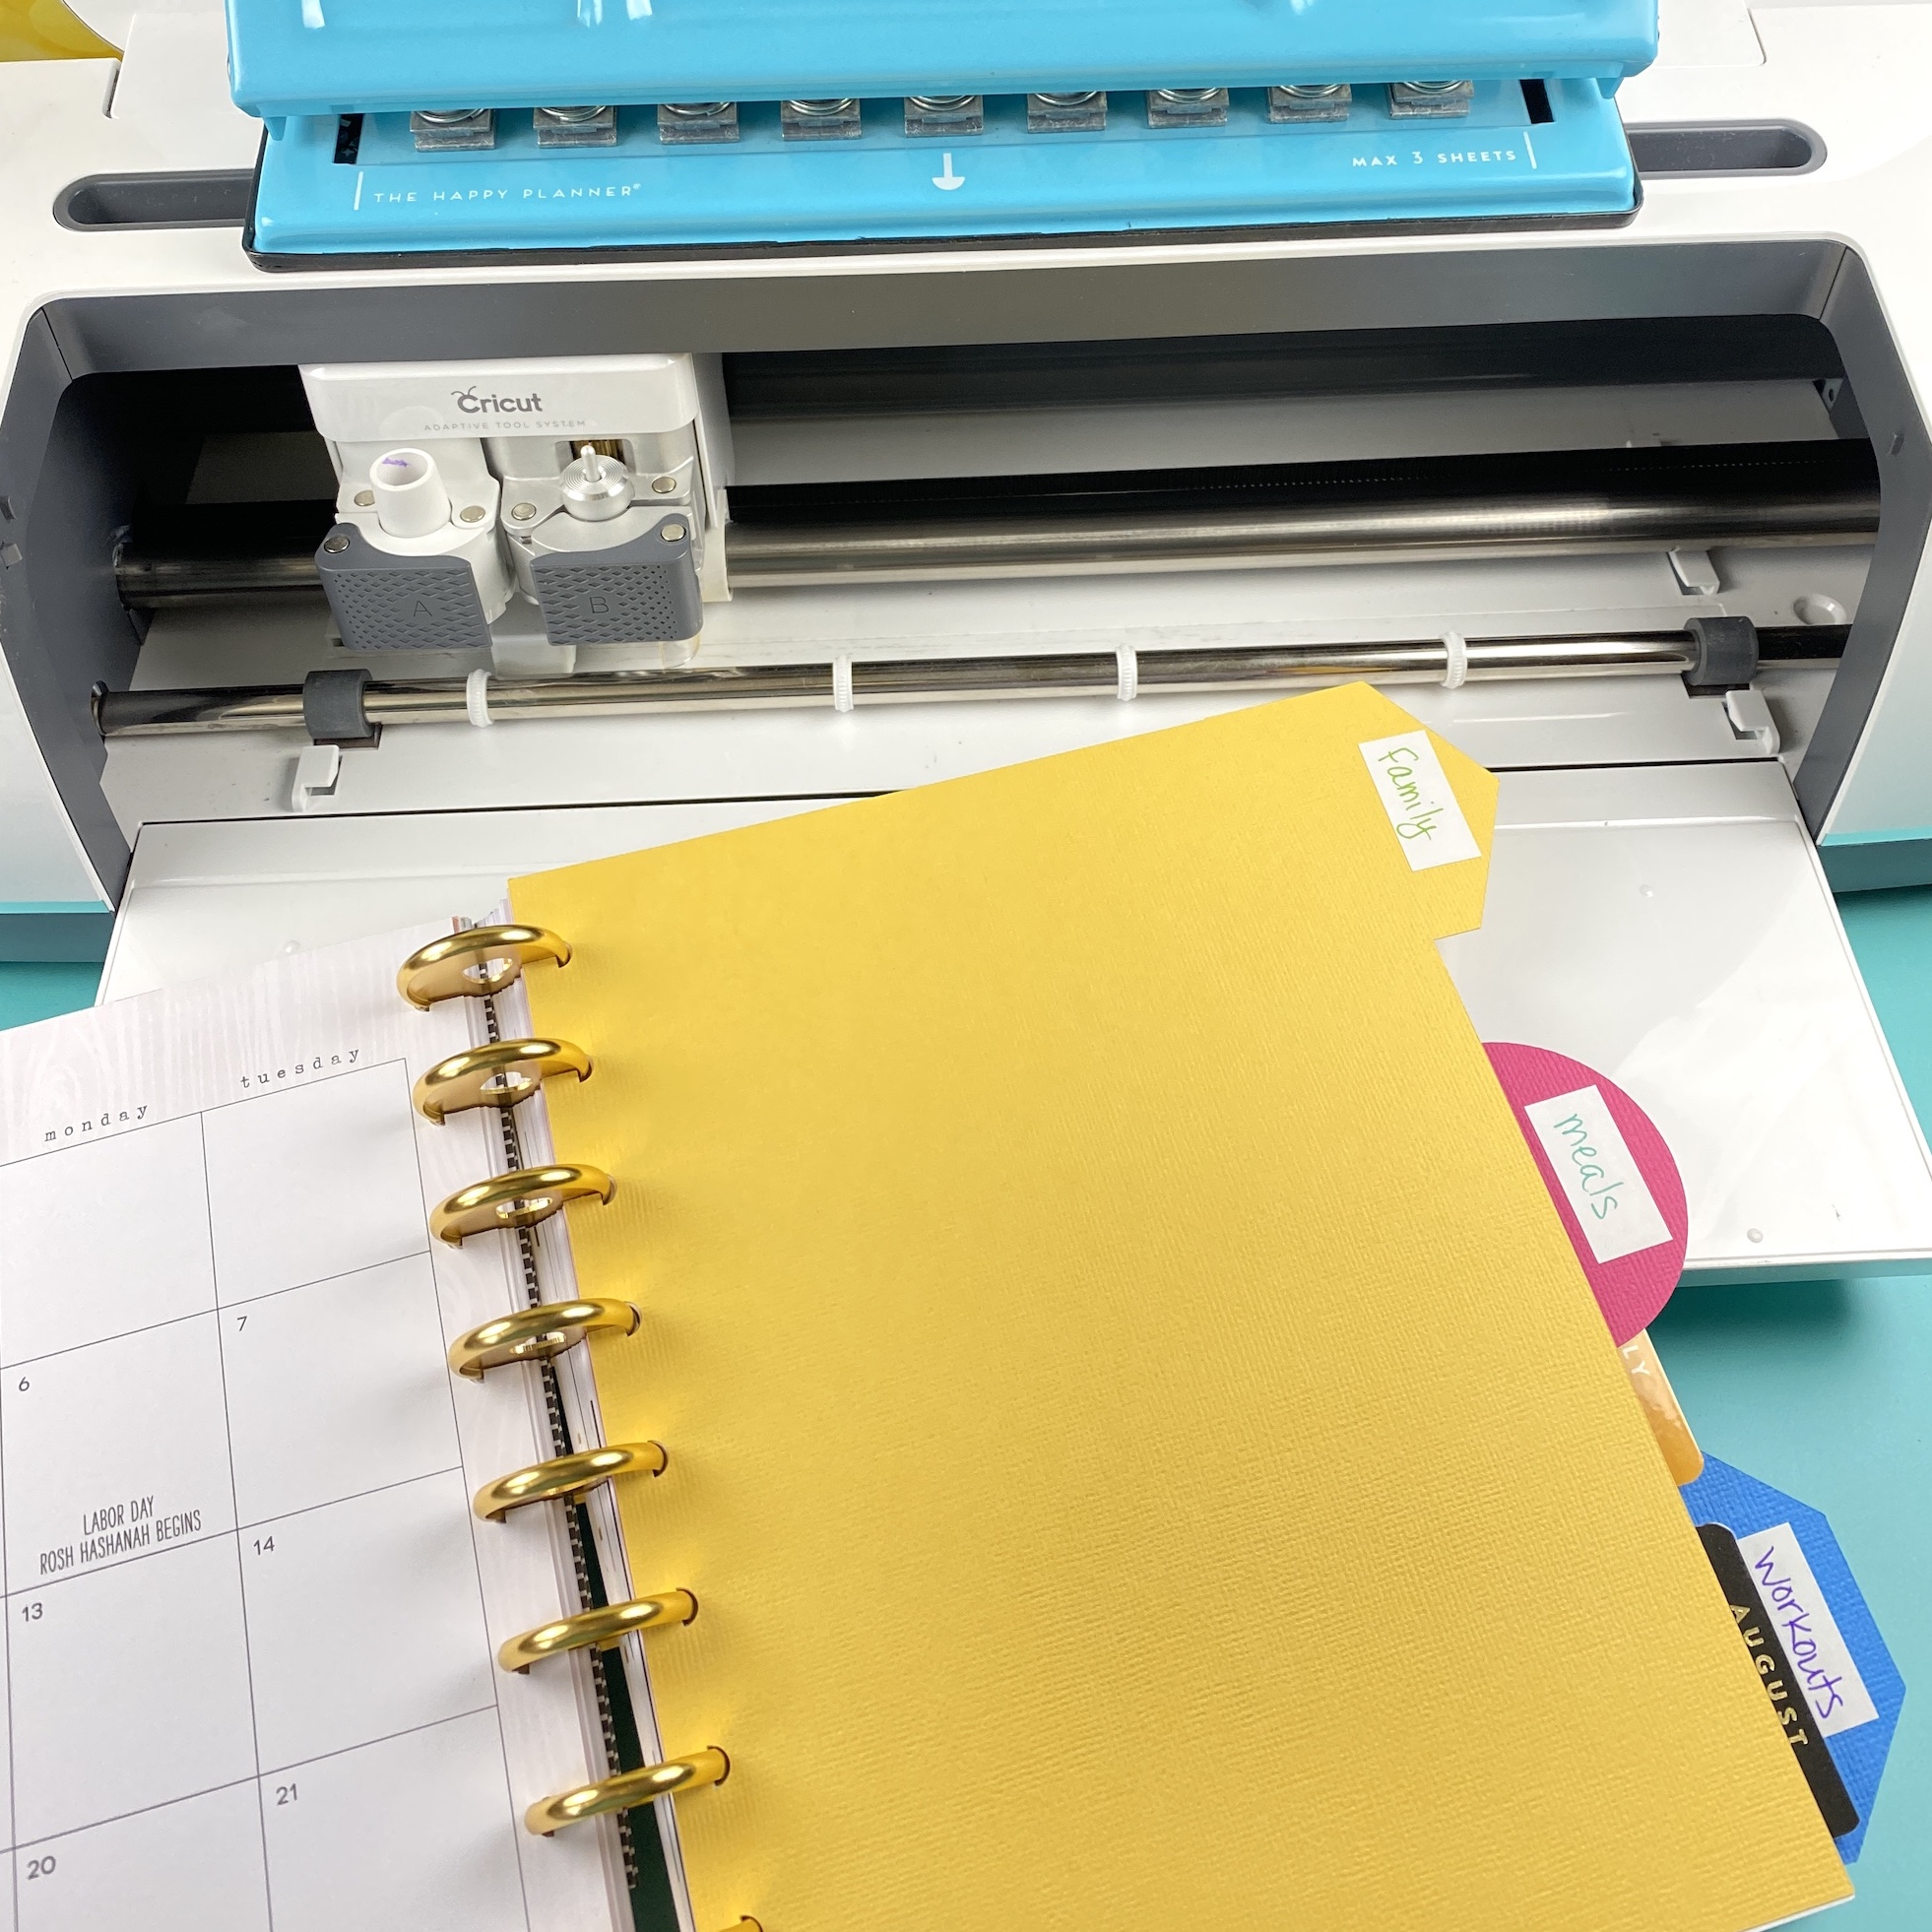 Planner tabs with Cricut